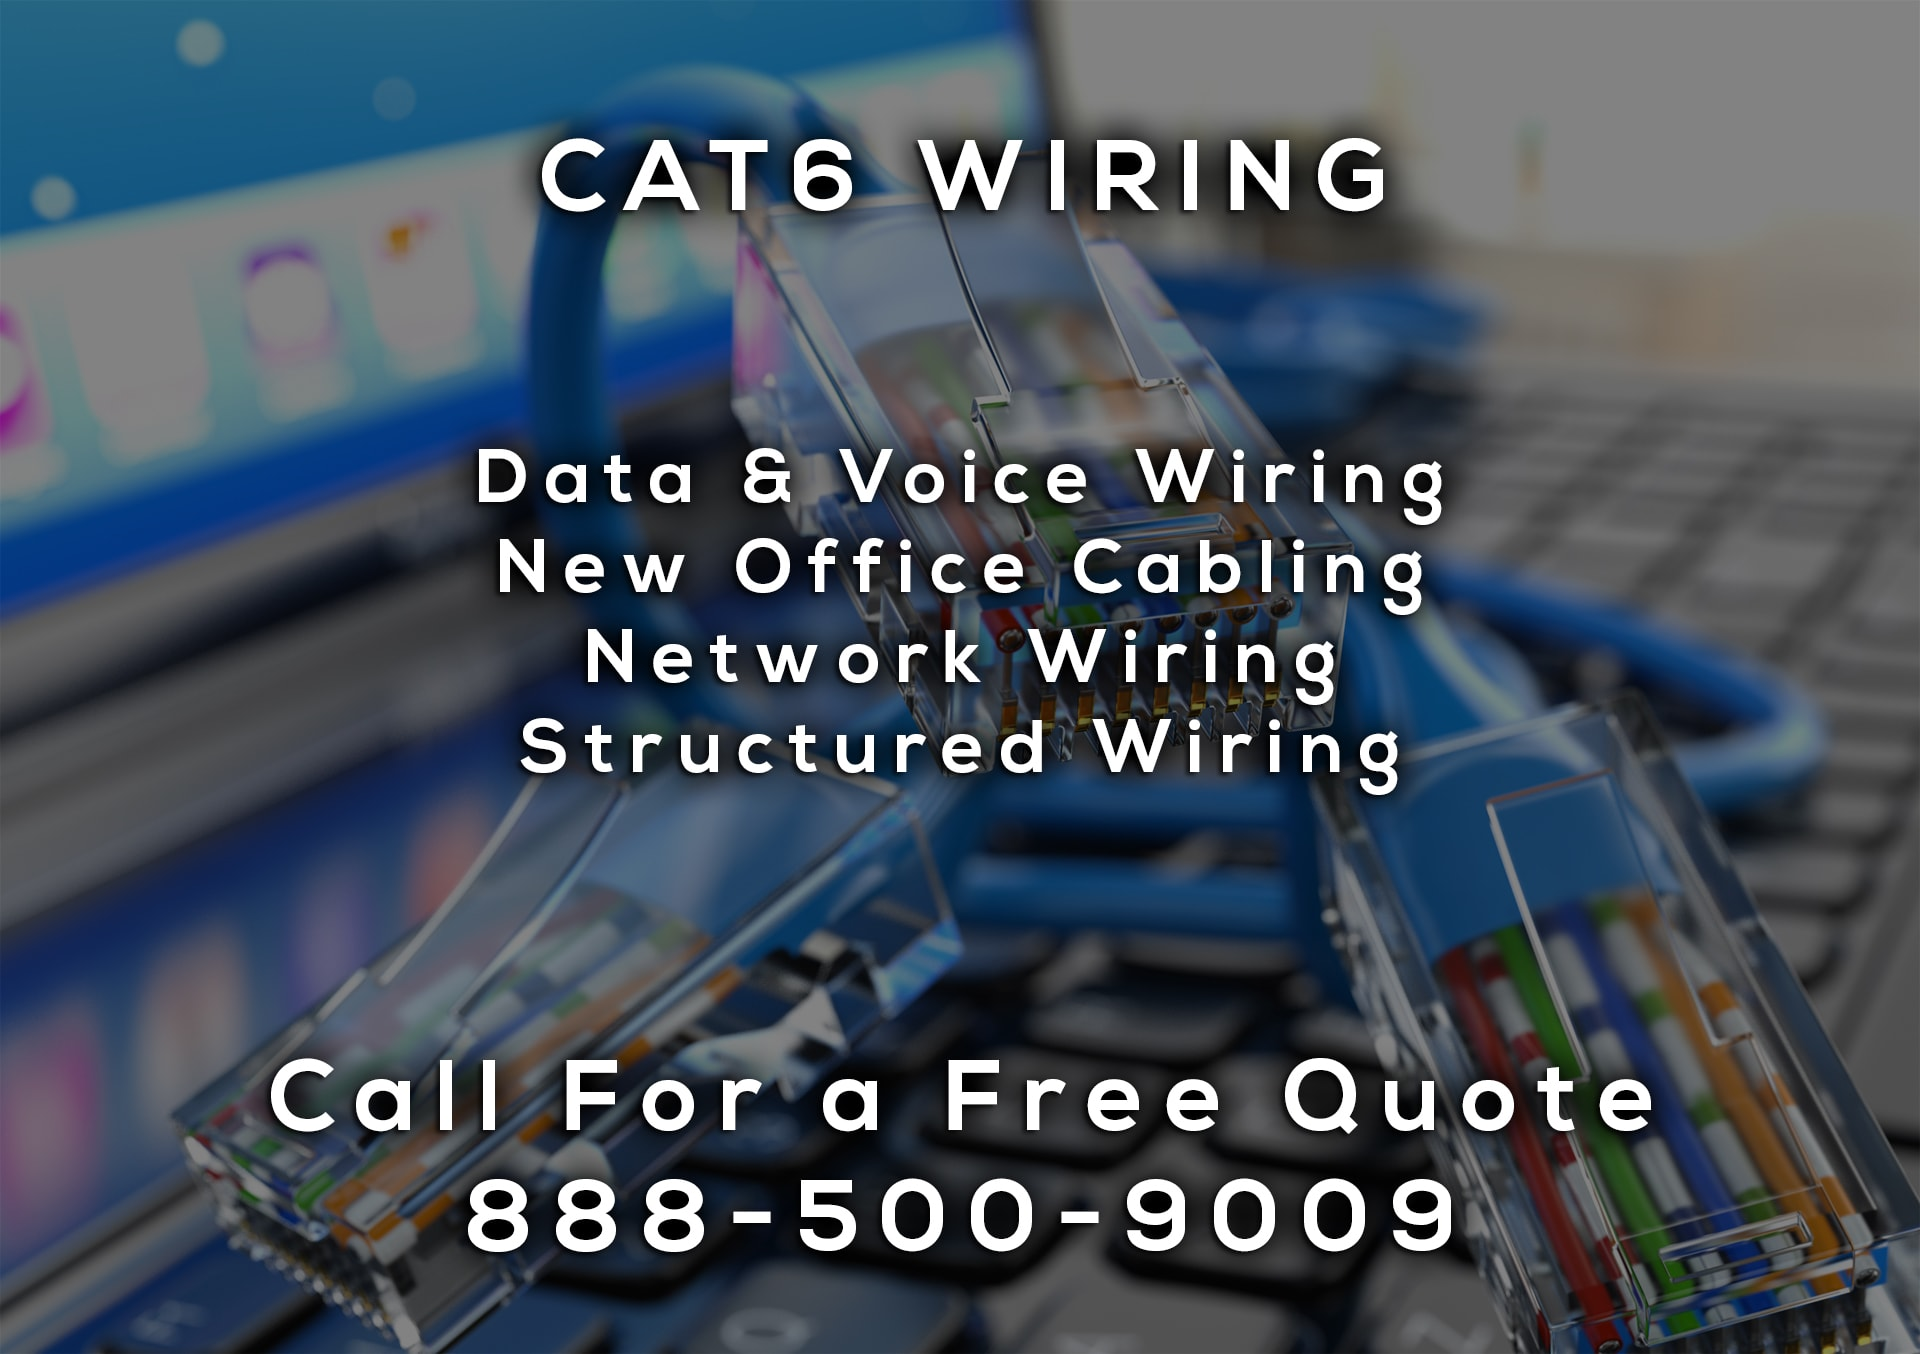 CAT6 Wiring in Needles CA